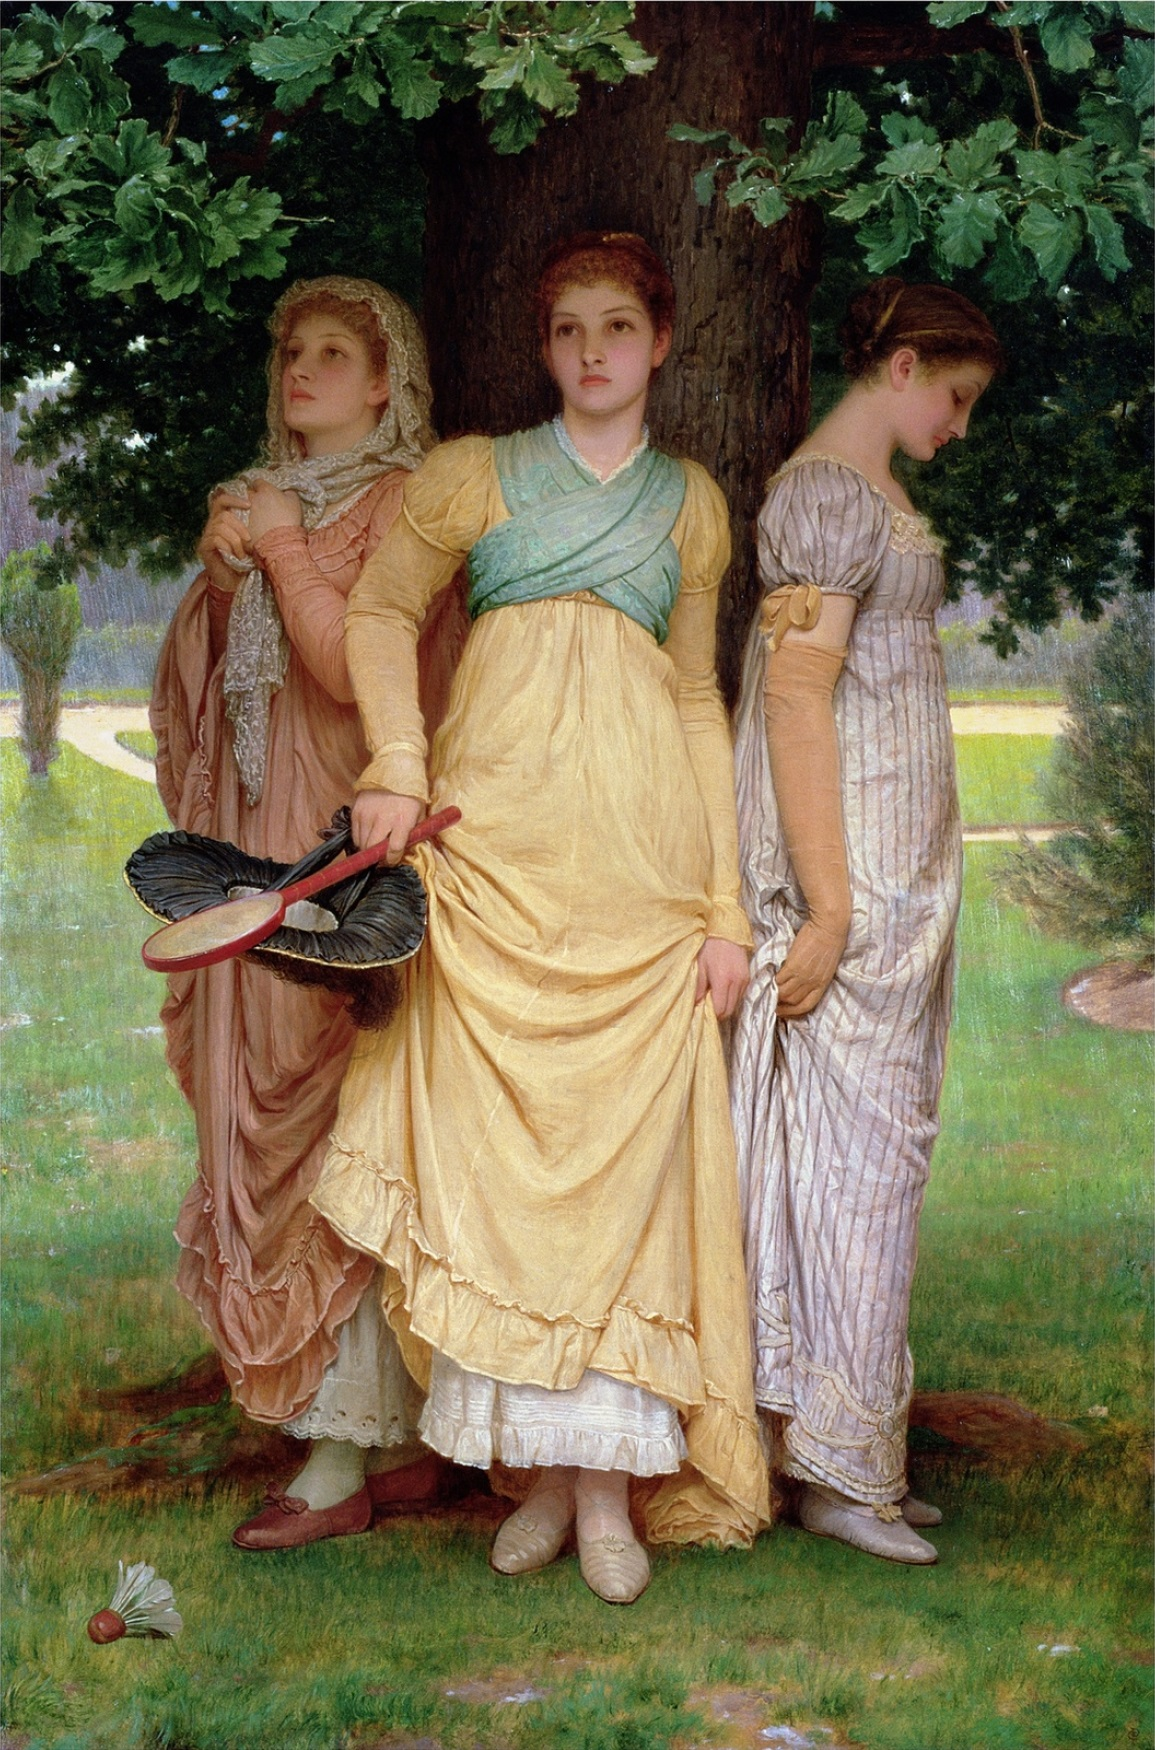 https://i2.wp.com/upload.wikimedia.org/wikipedia/commons/8/89/A_Summer_Shower%2C_by_Charles_Edward_Perugini.jpg